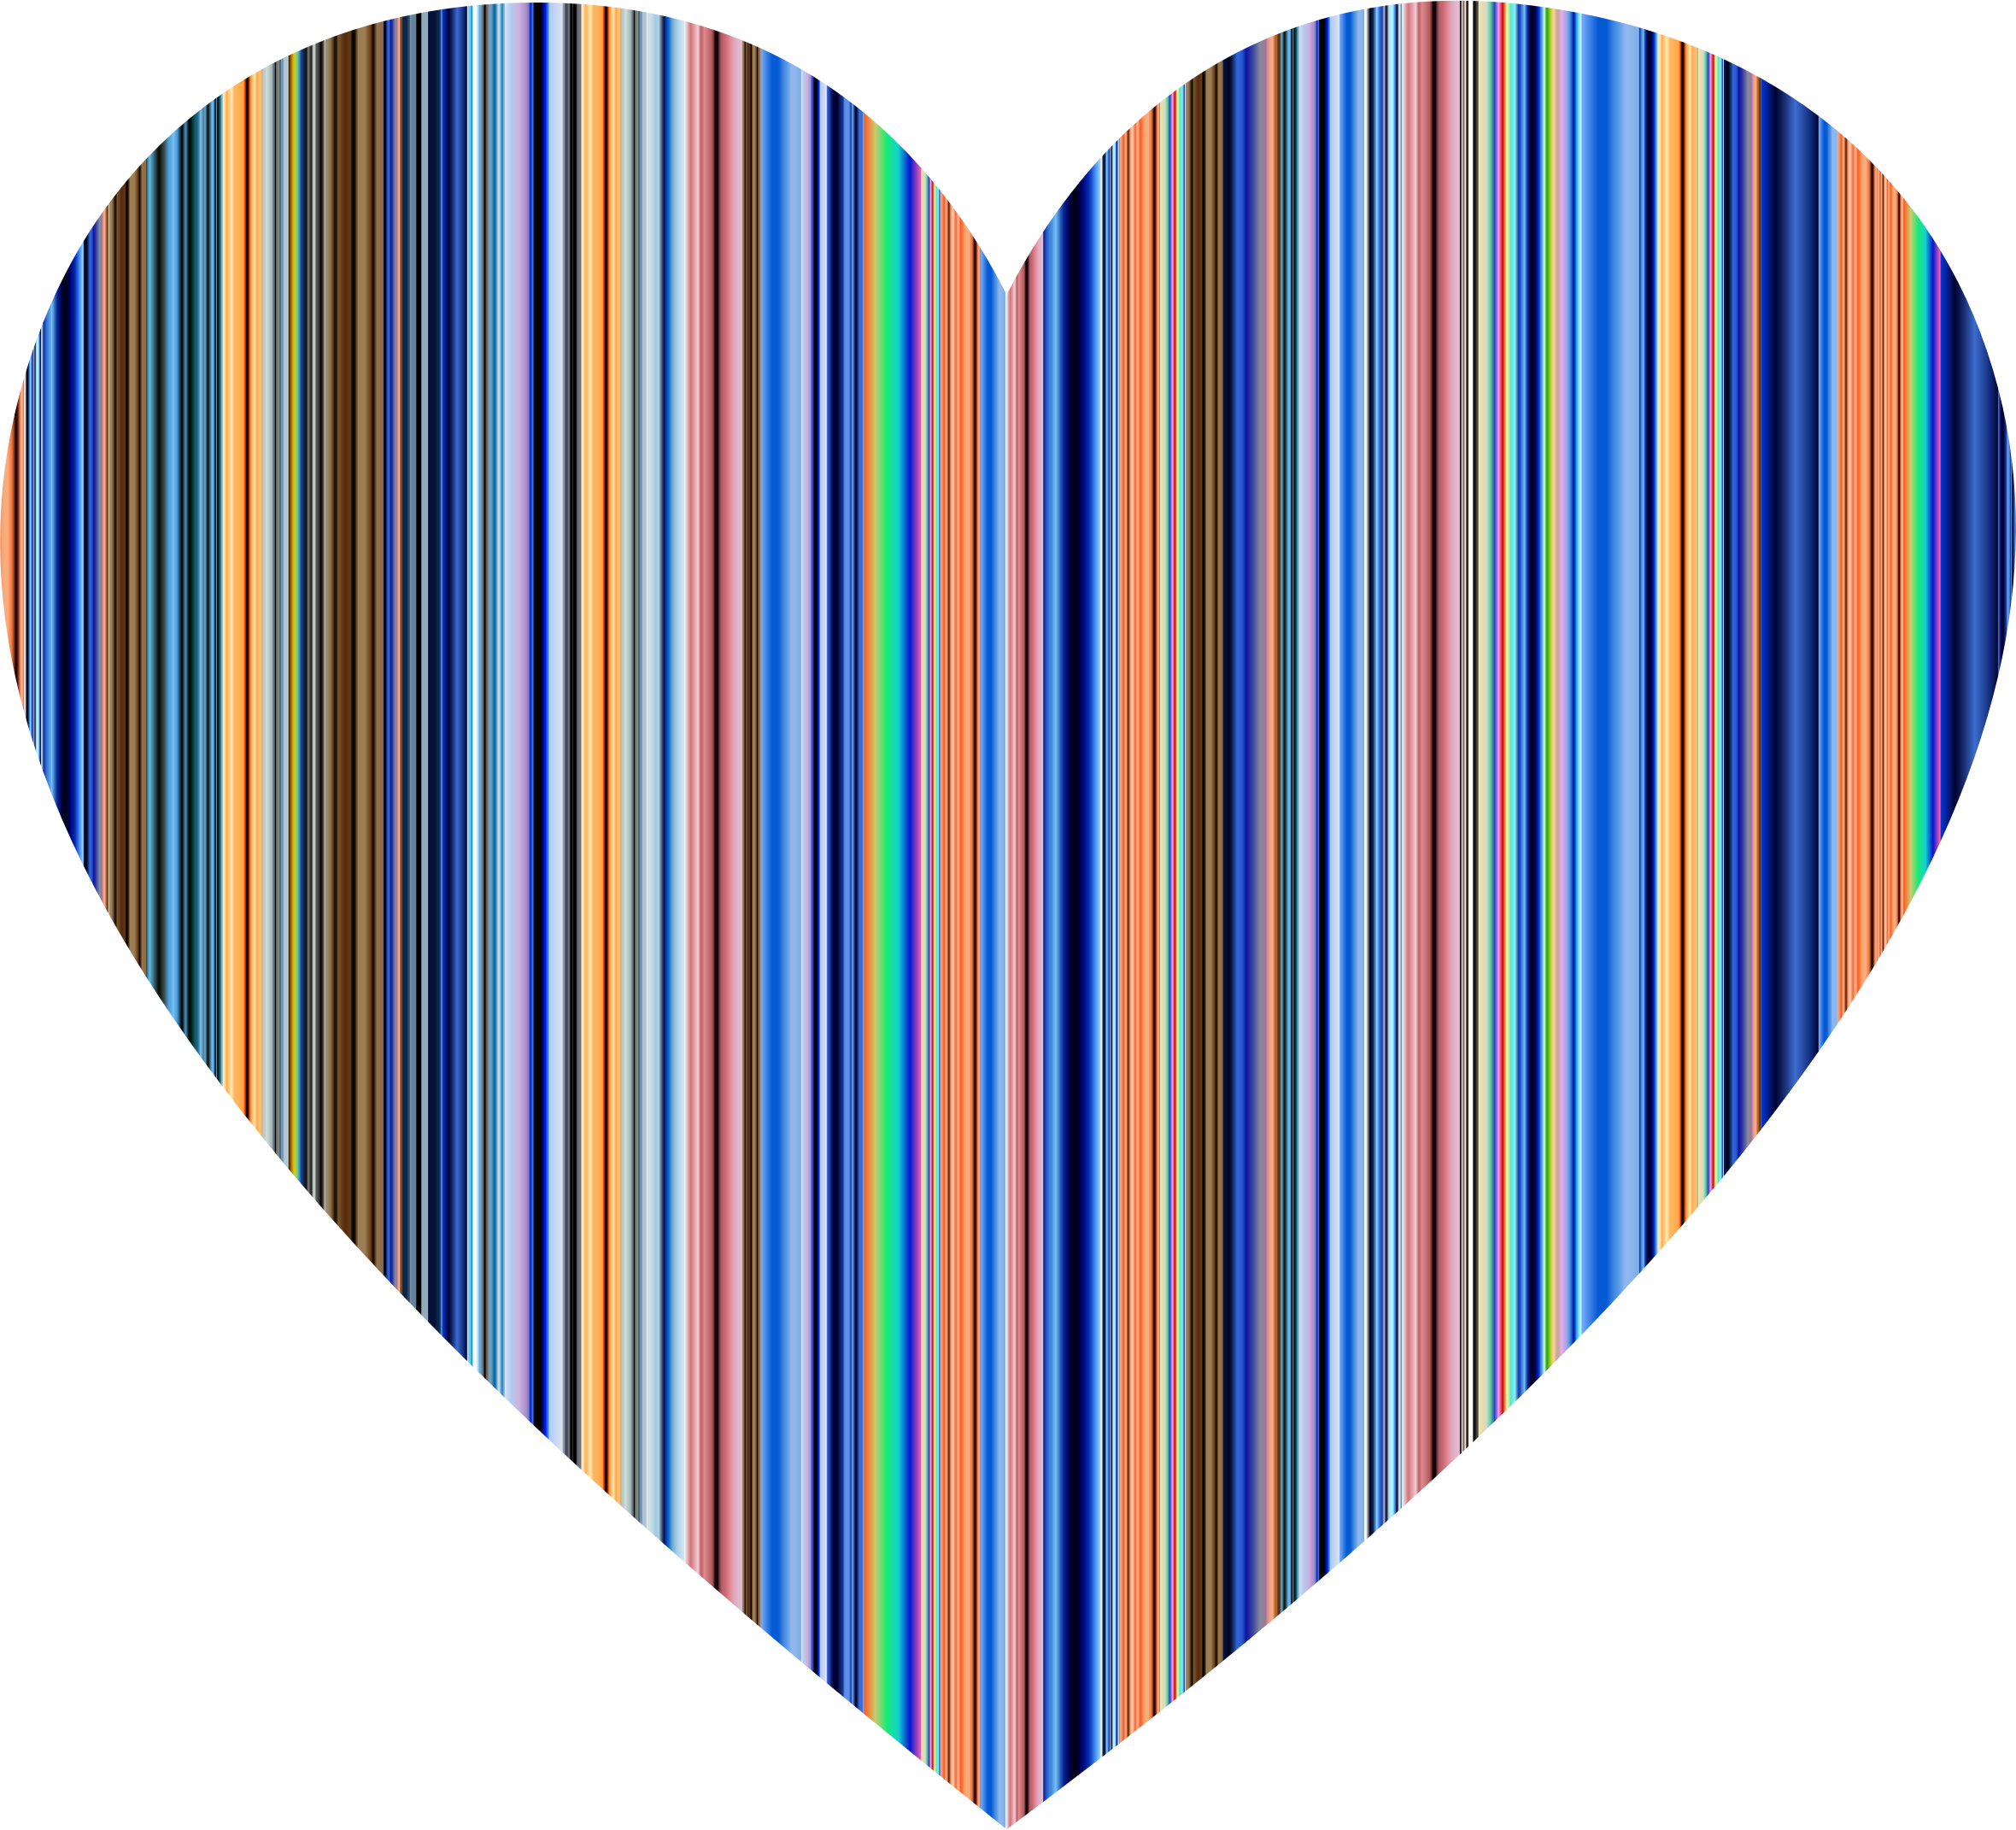 2360x2142 Teal Clipart Colorful Heart